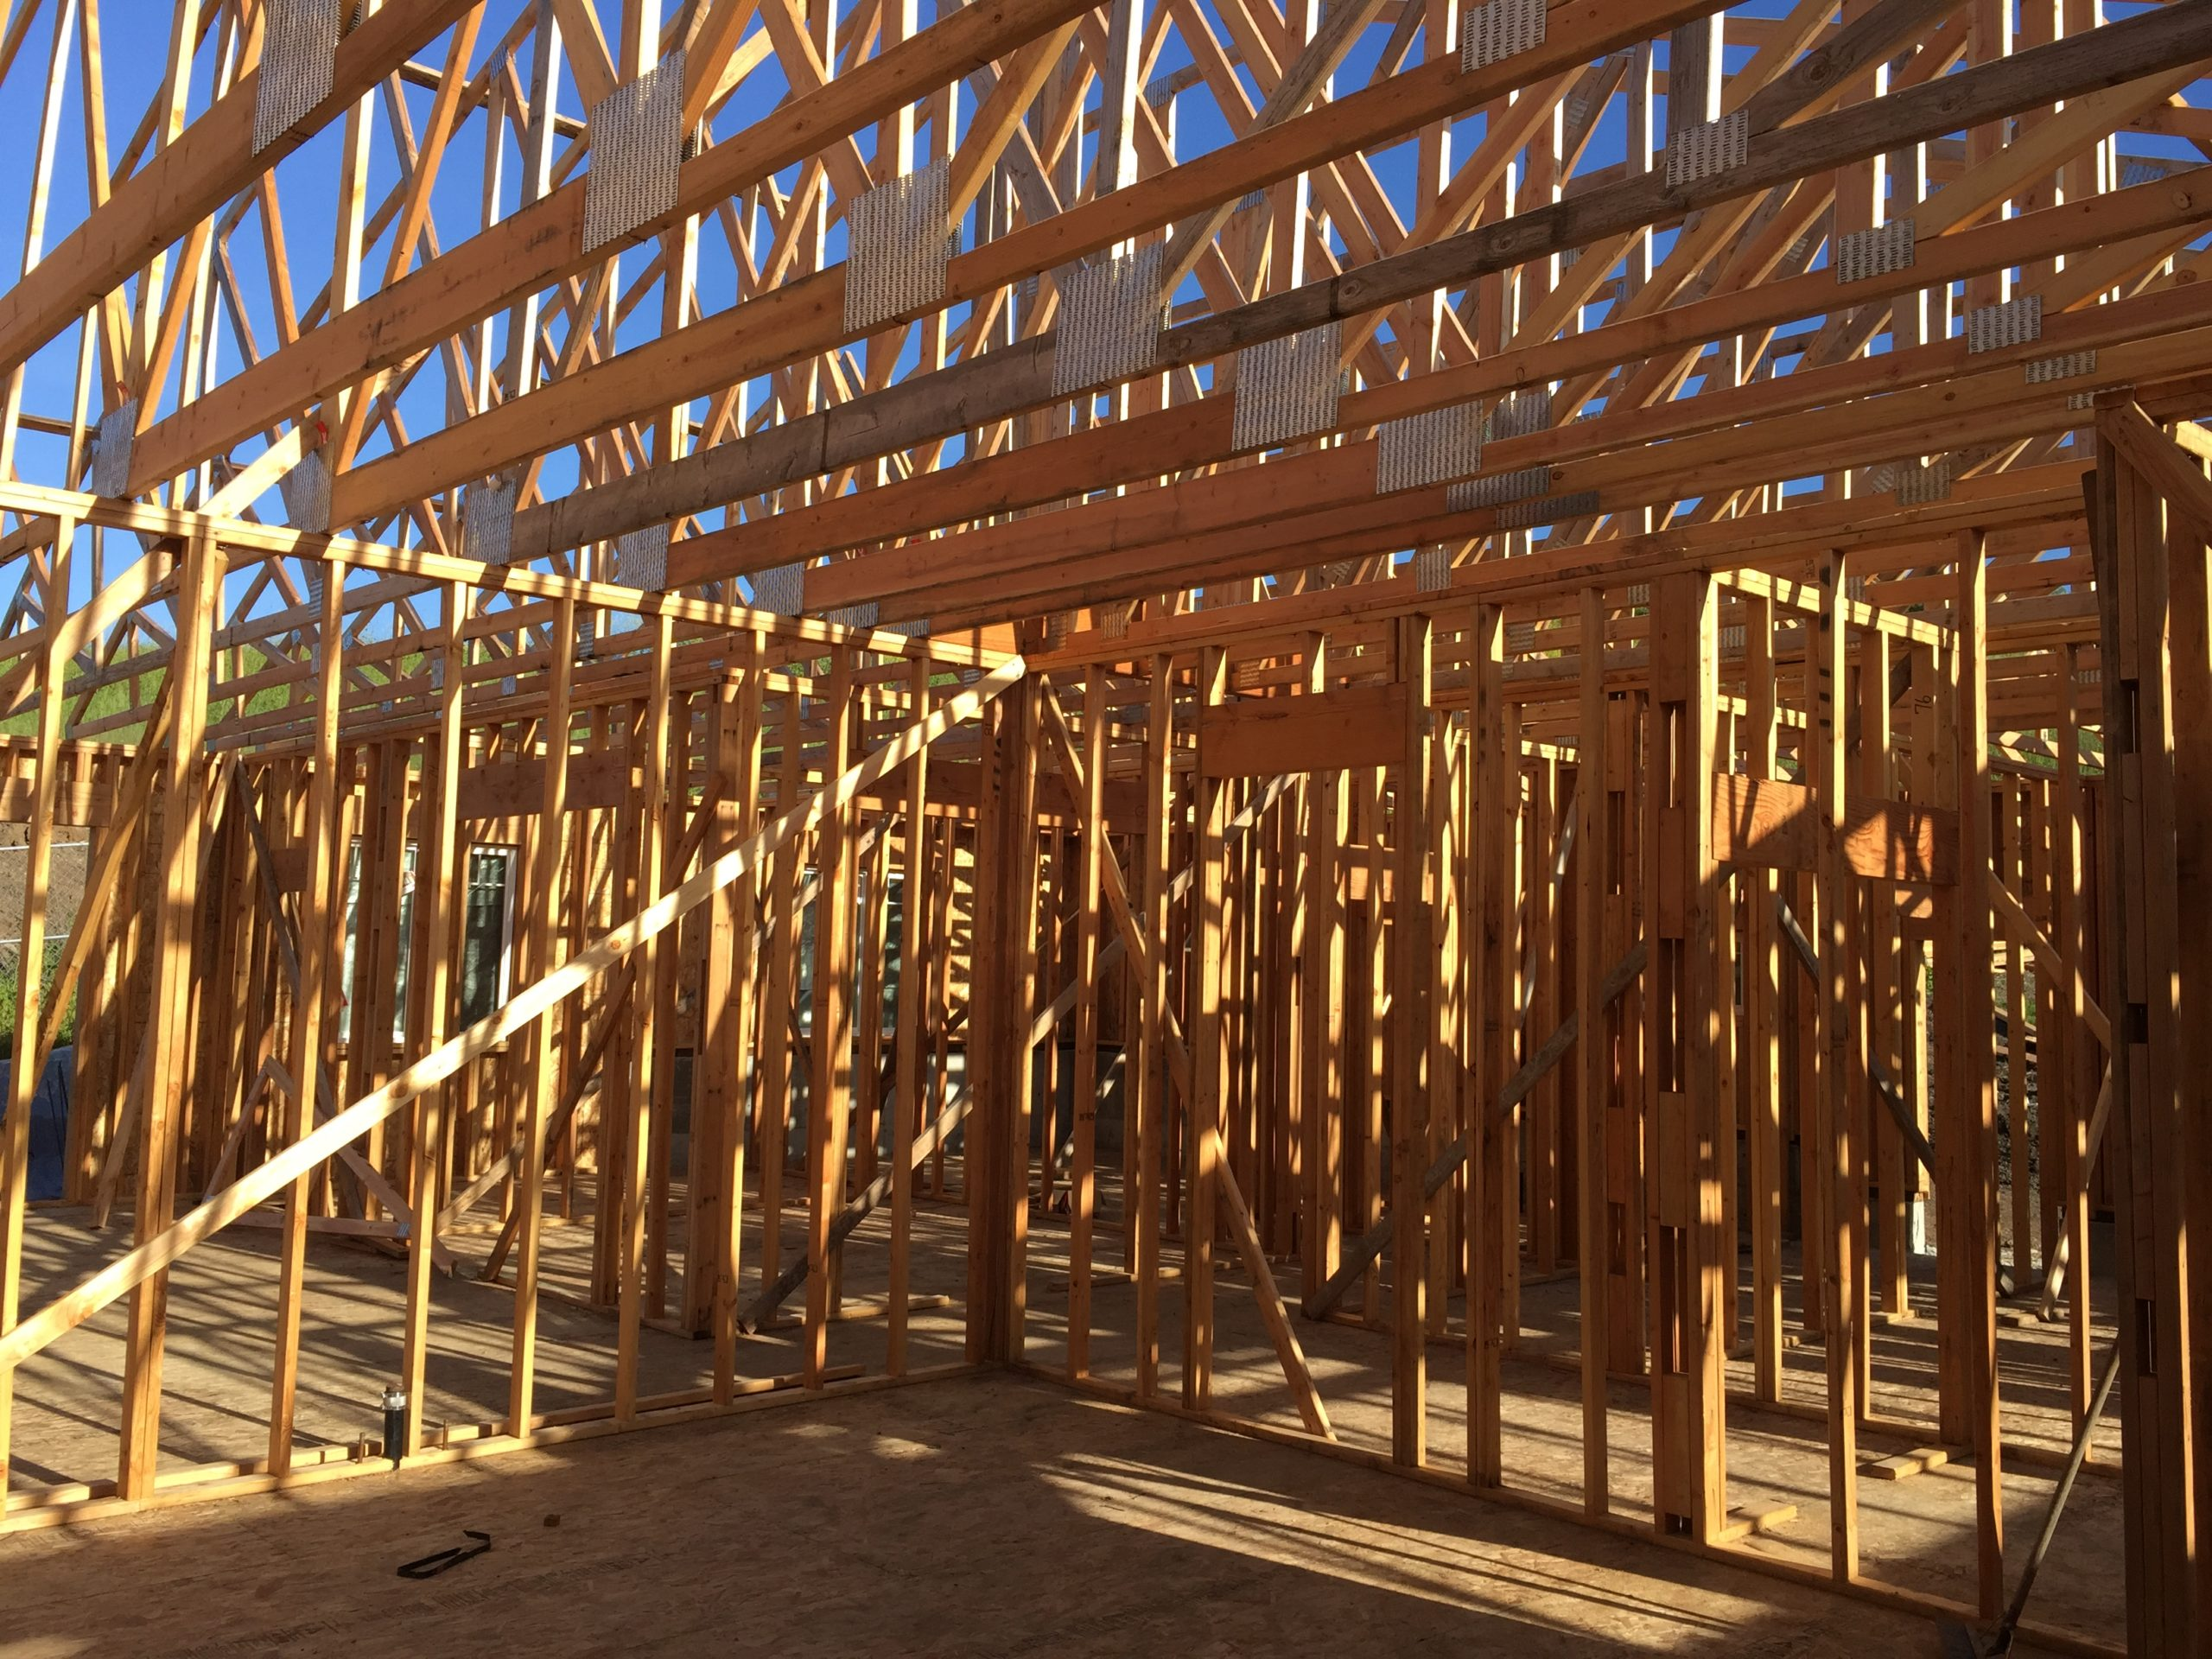 Bay Area Packaged Home Framing